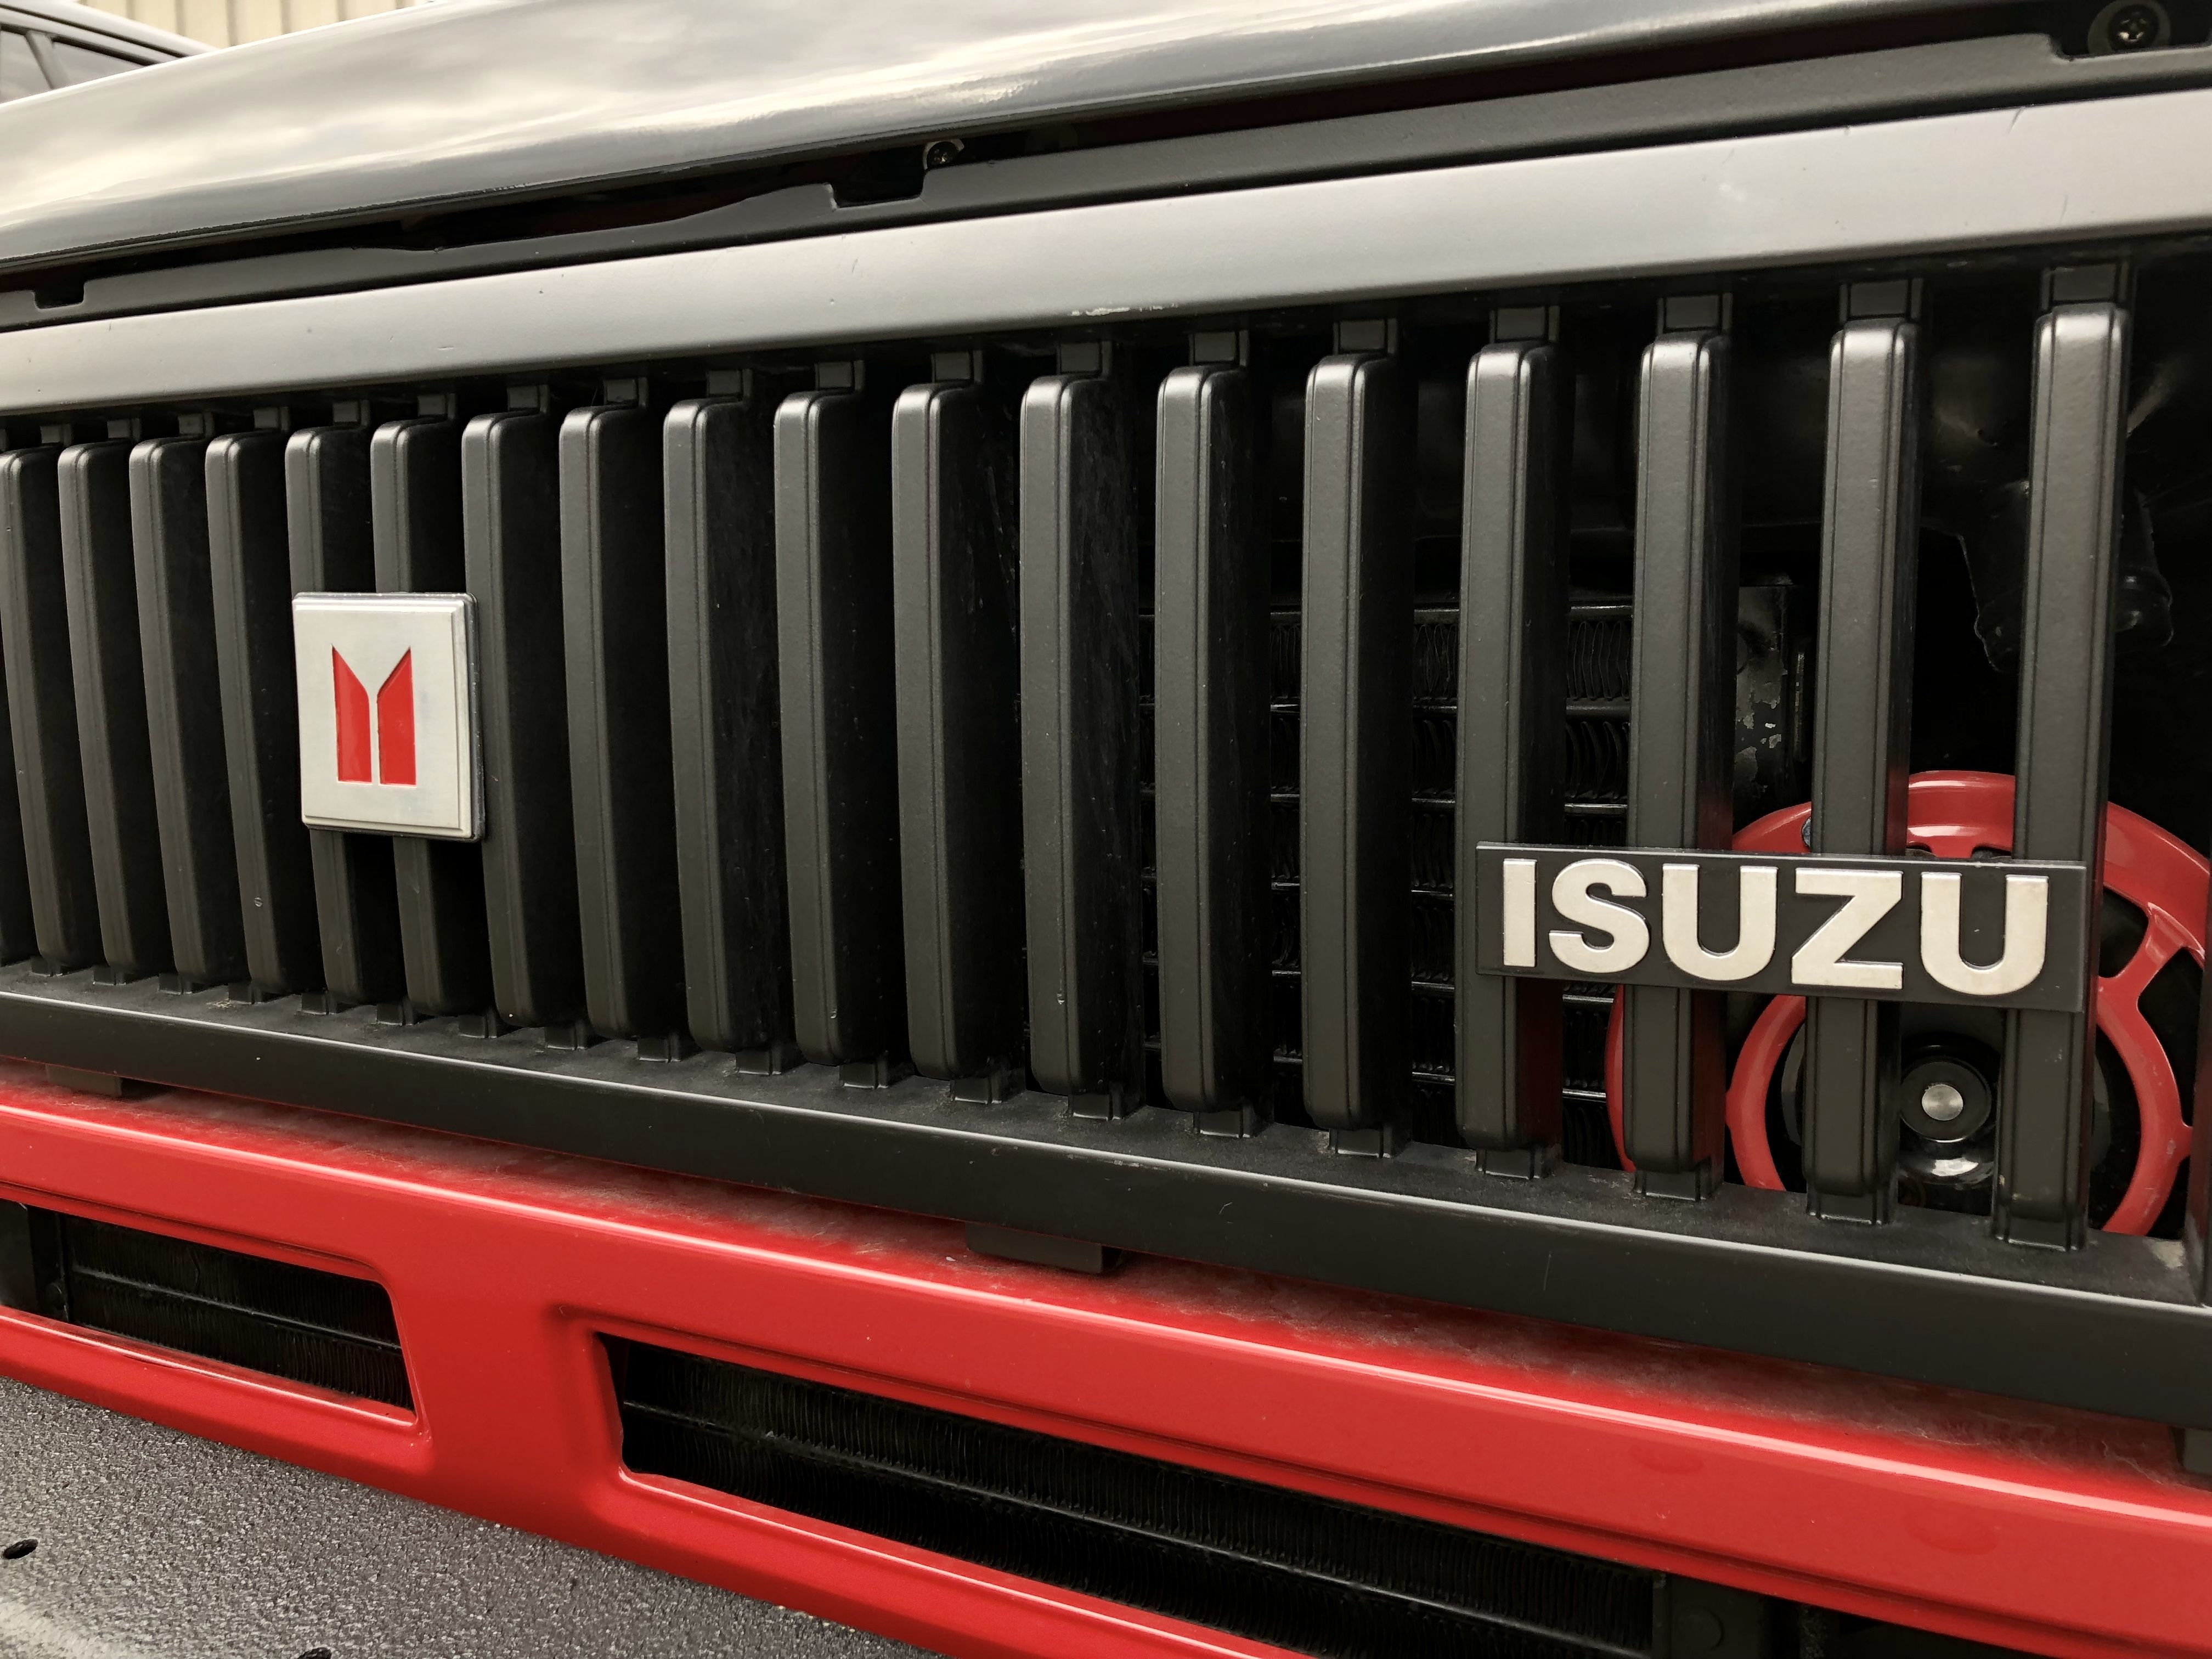 More Progress On My 1988 Isuzu Trooper Build The Badges Are On The Grill And Look Awesome T Rex Is Looking Better And Better Every Trooper Vehicles Car Radio